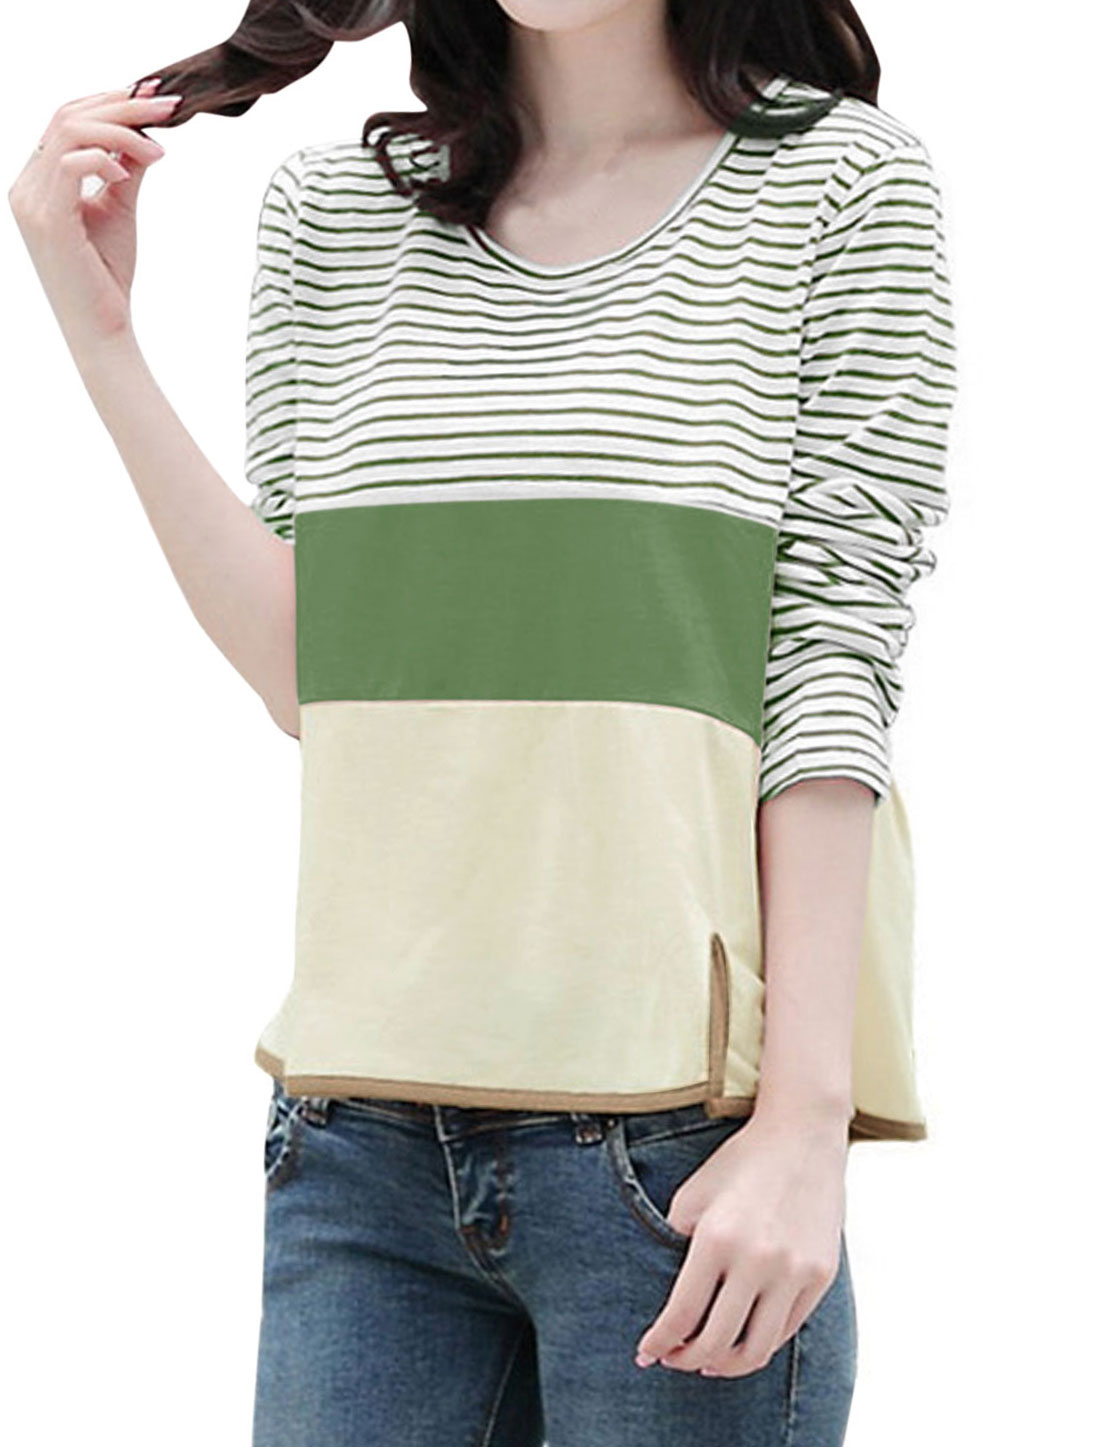 Lady Long Sleeve Round Neck Stripes Upper Cut Out Shirt Dark Green White S